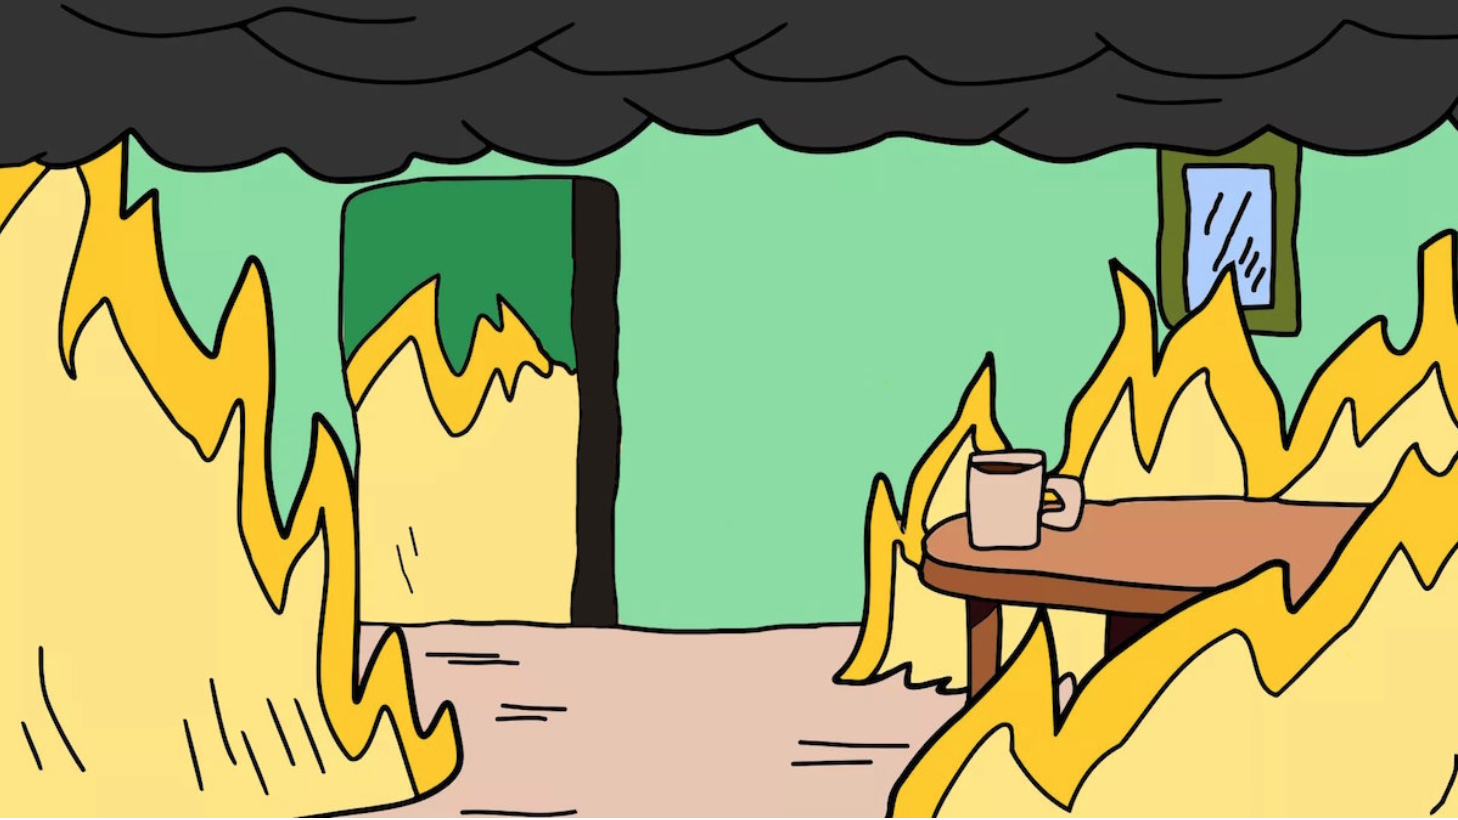 Screenshot of cartoon room on fire, with a dark cloud covering the ceiling and a cup of coffee casually sitting on a table